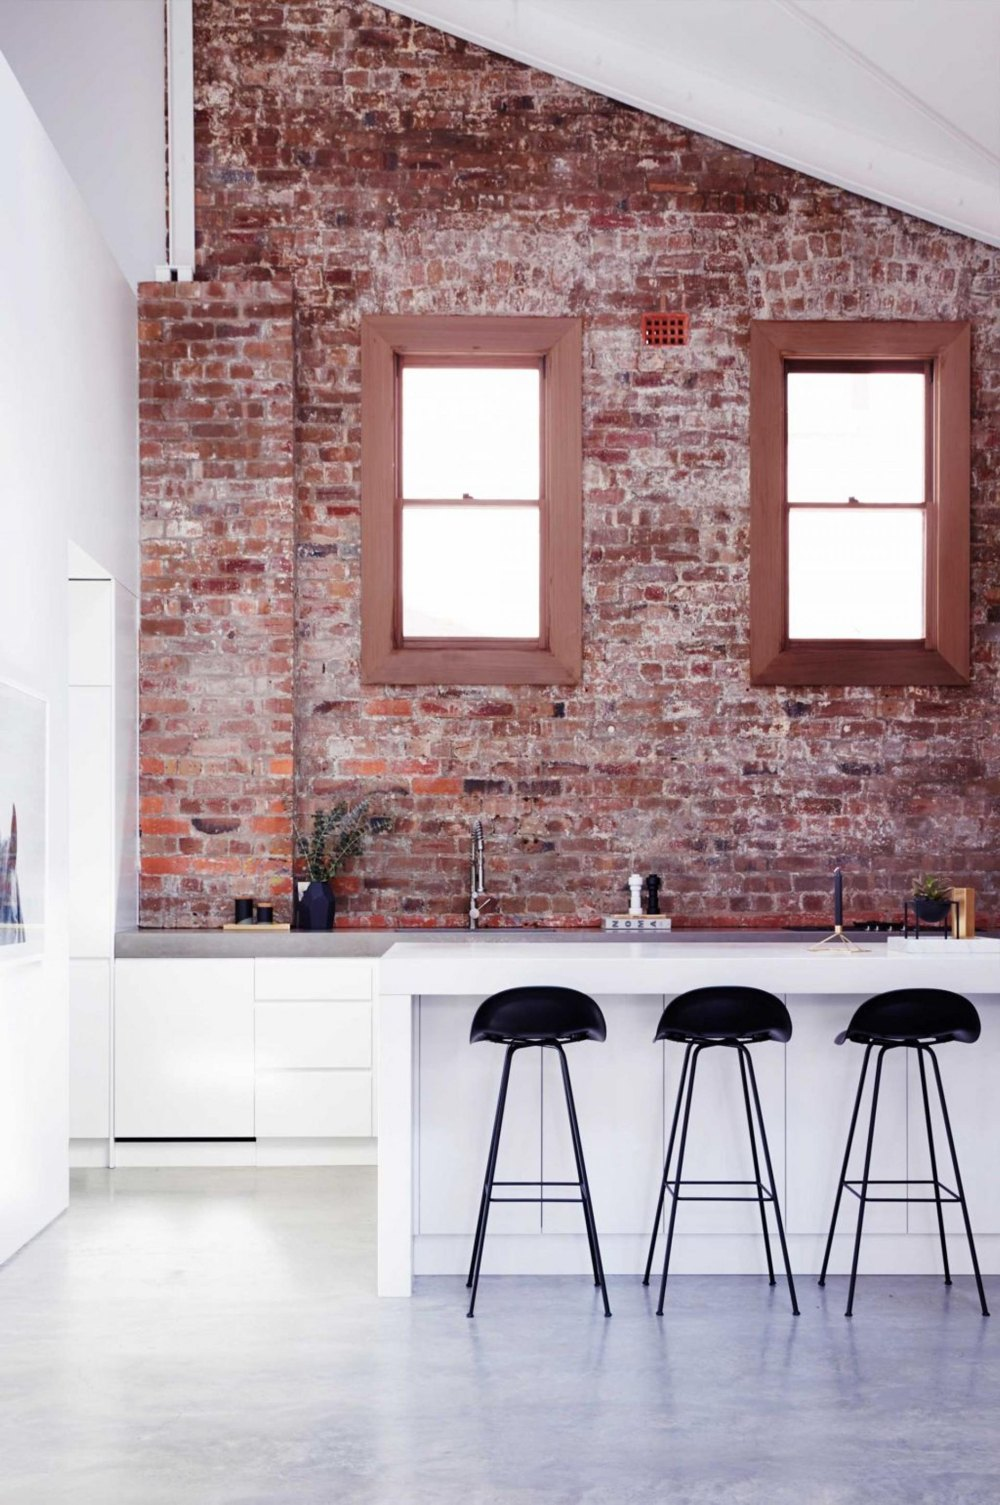 19 Stunning Interior Brick Wall Ideas Decorate With